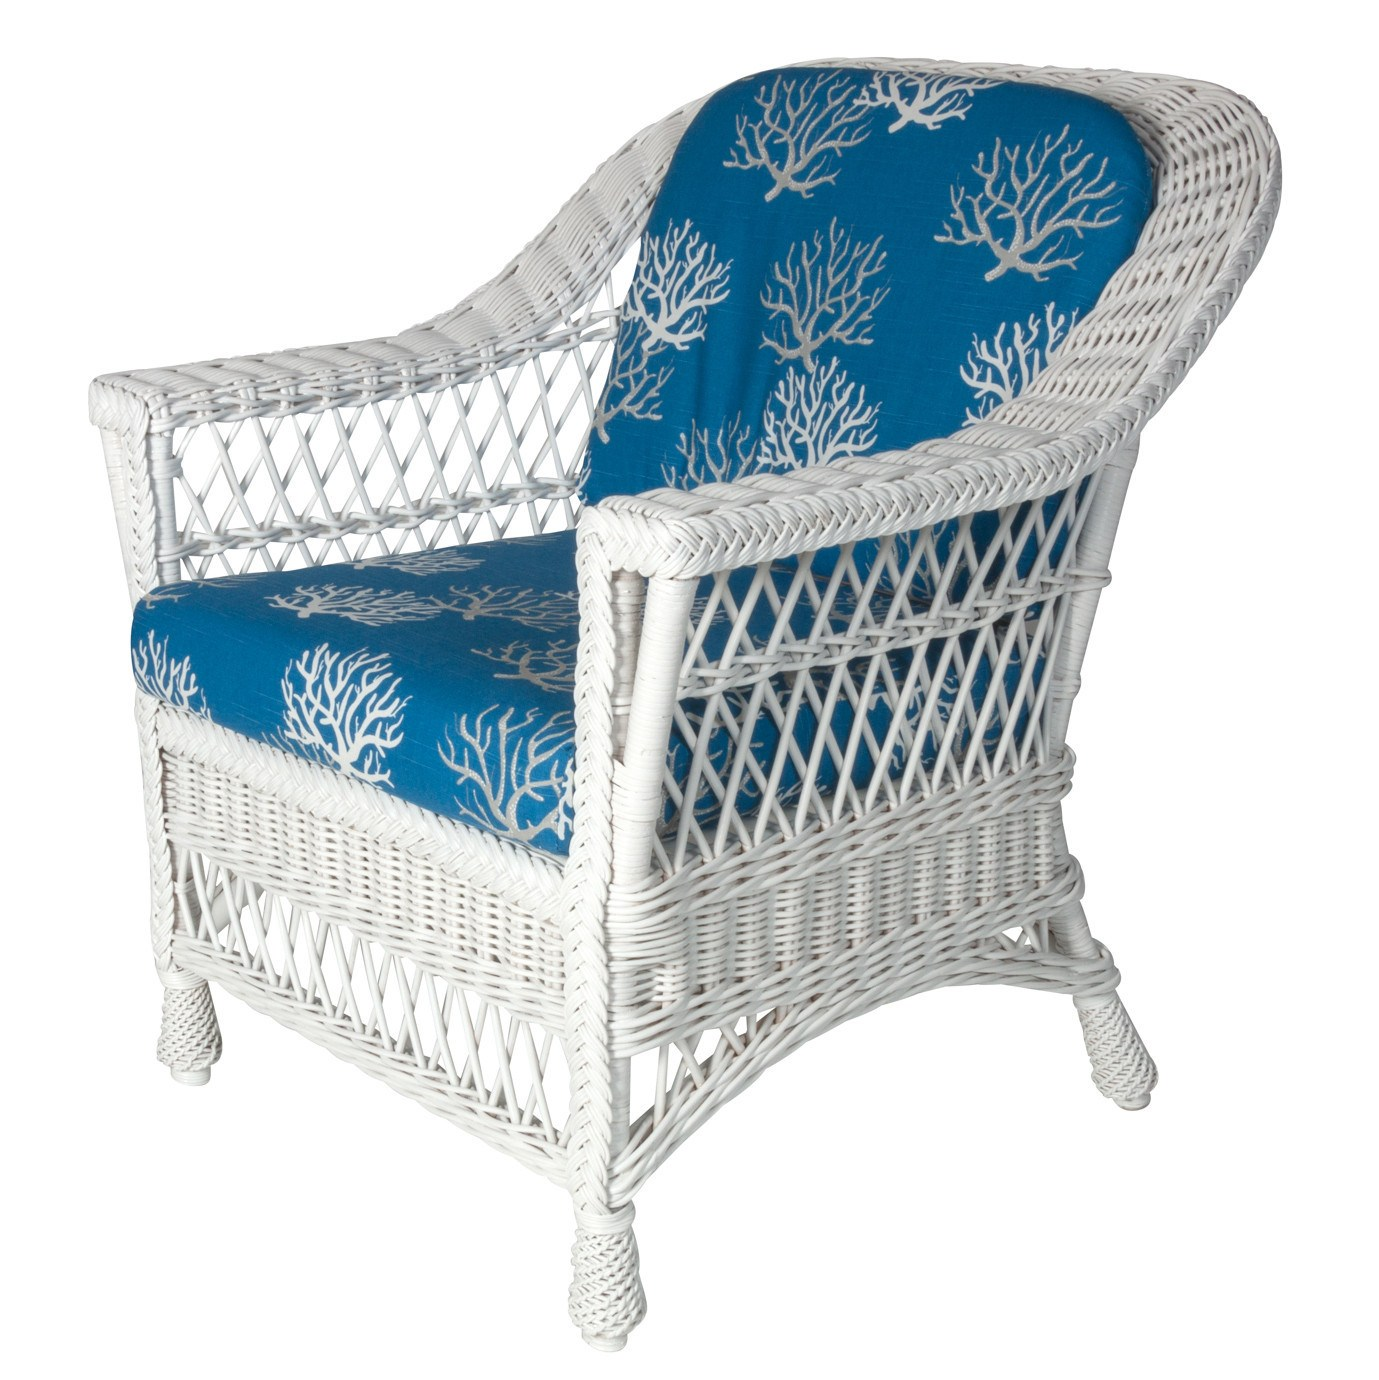 Designer Wicker & Rattan By Tribor Harbor front Arm Chair by Designer Wicker from Tribor Chair - Rattan Imports